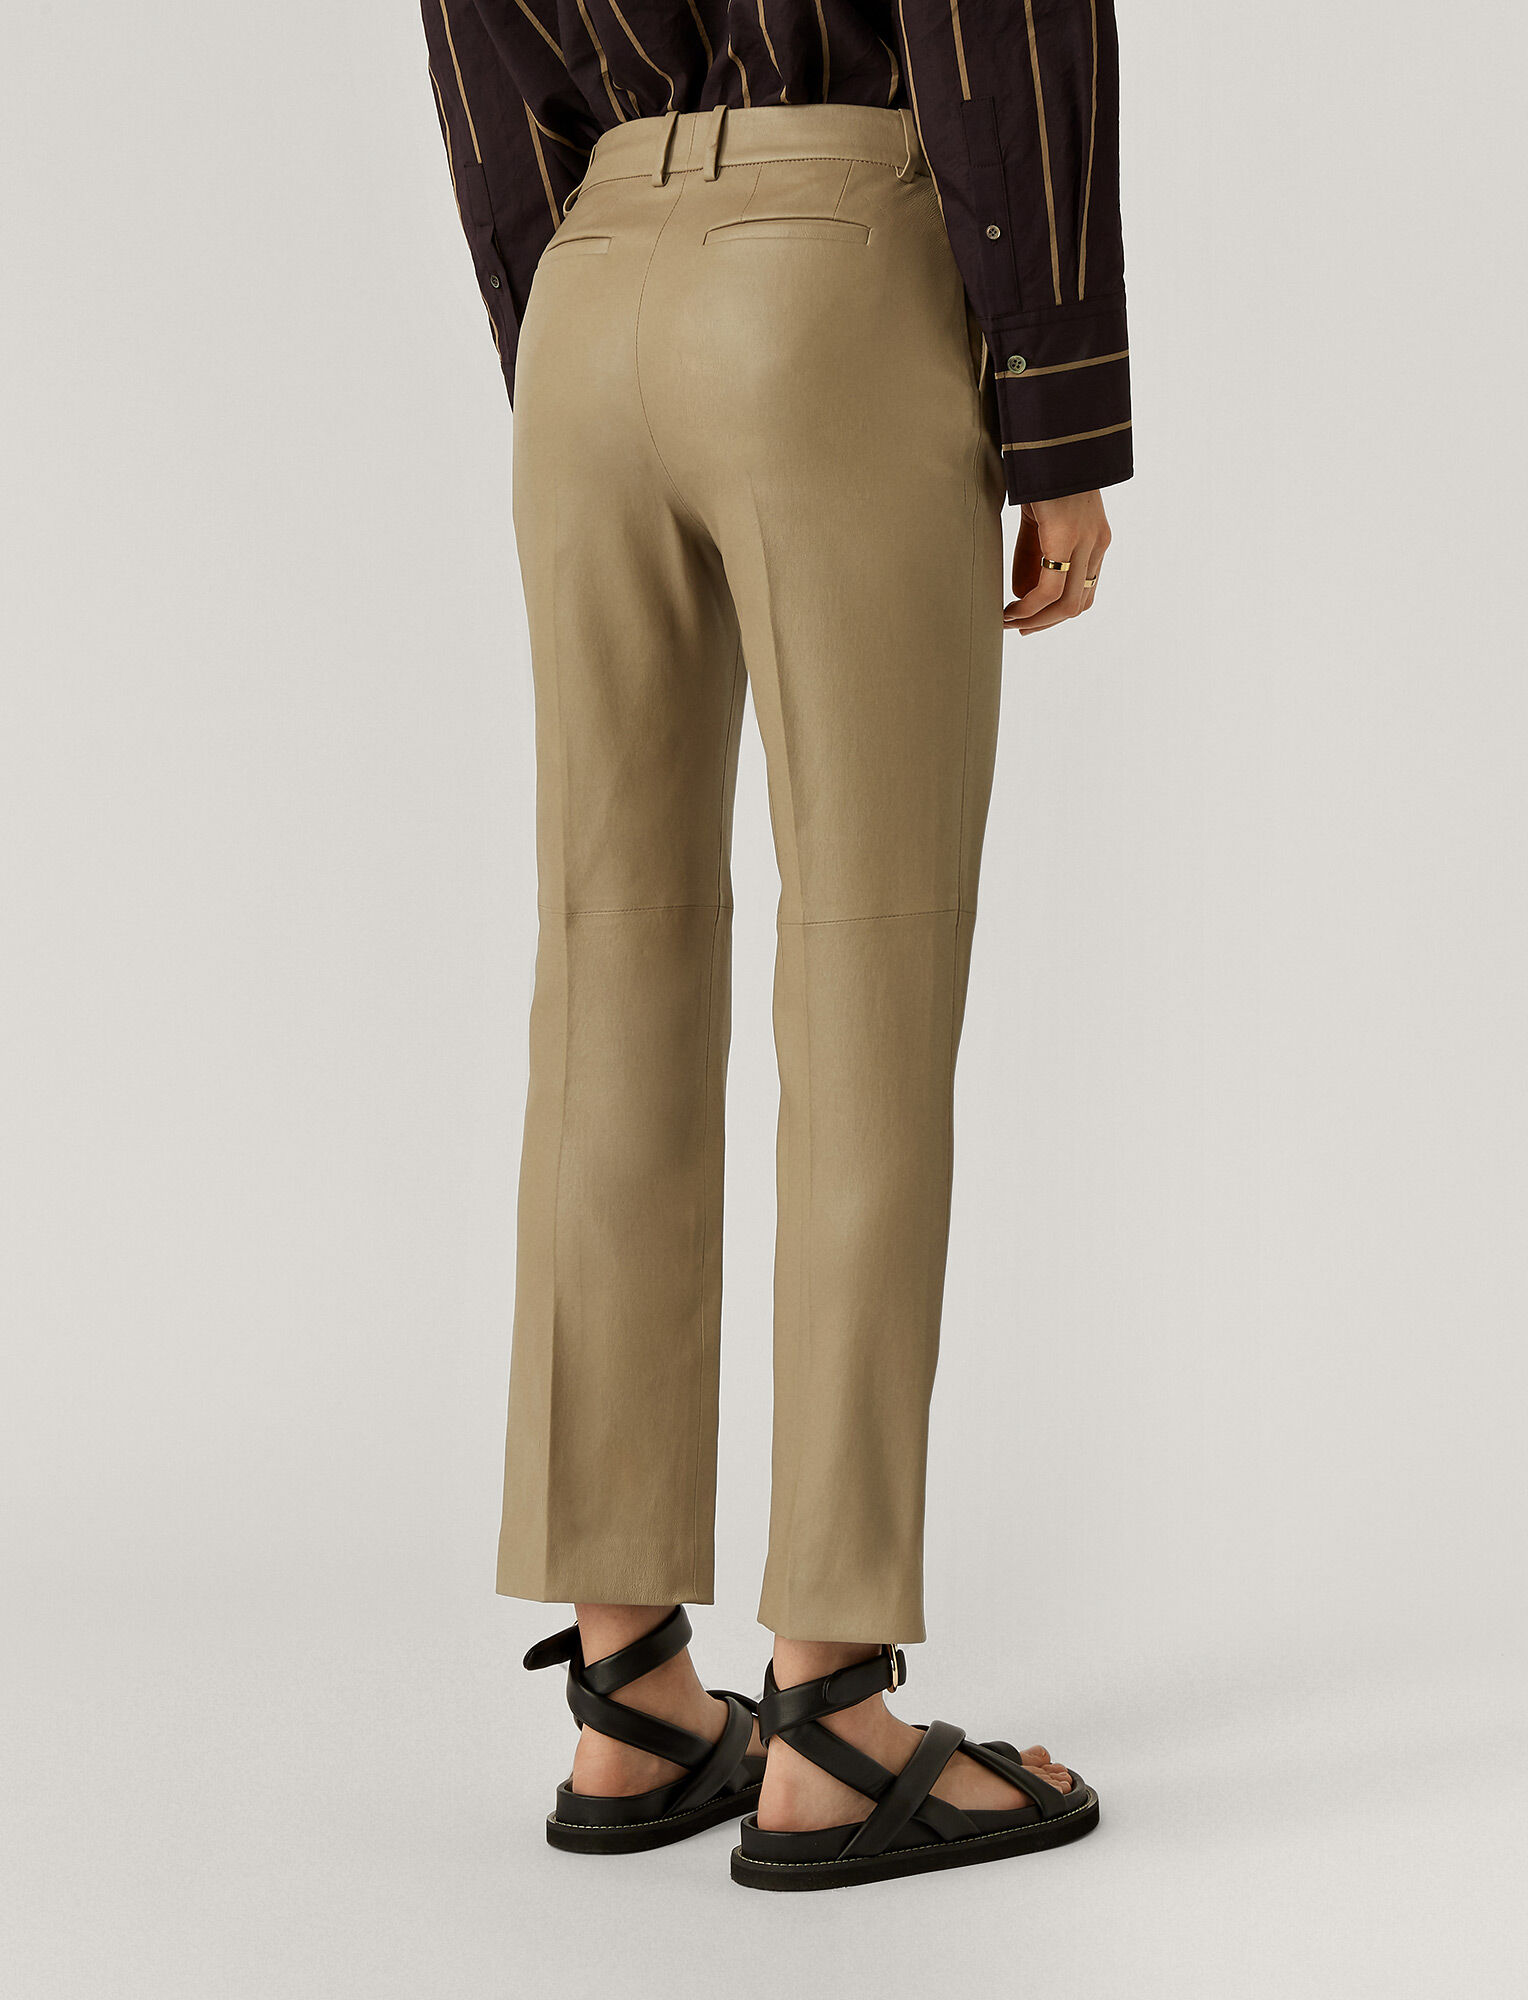 Joseph, Coleman Stretch Leather Trousers, in SAND